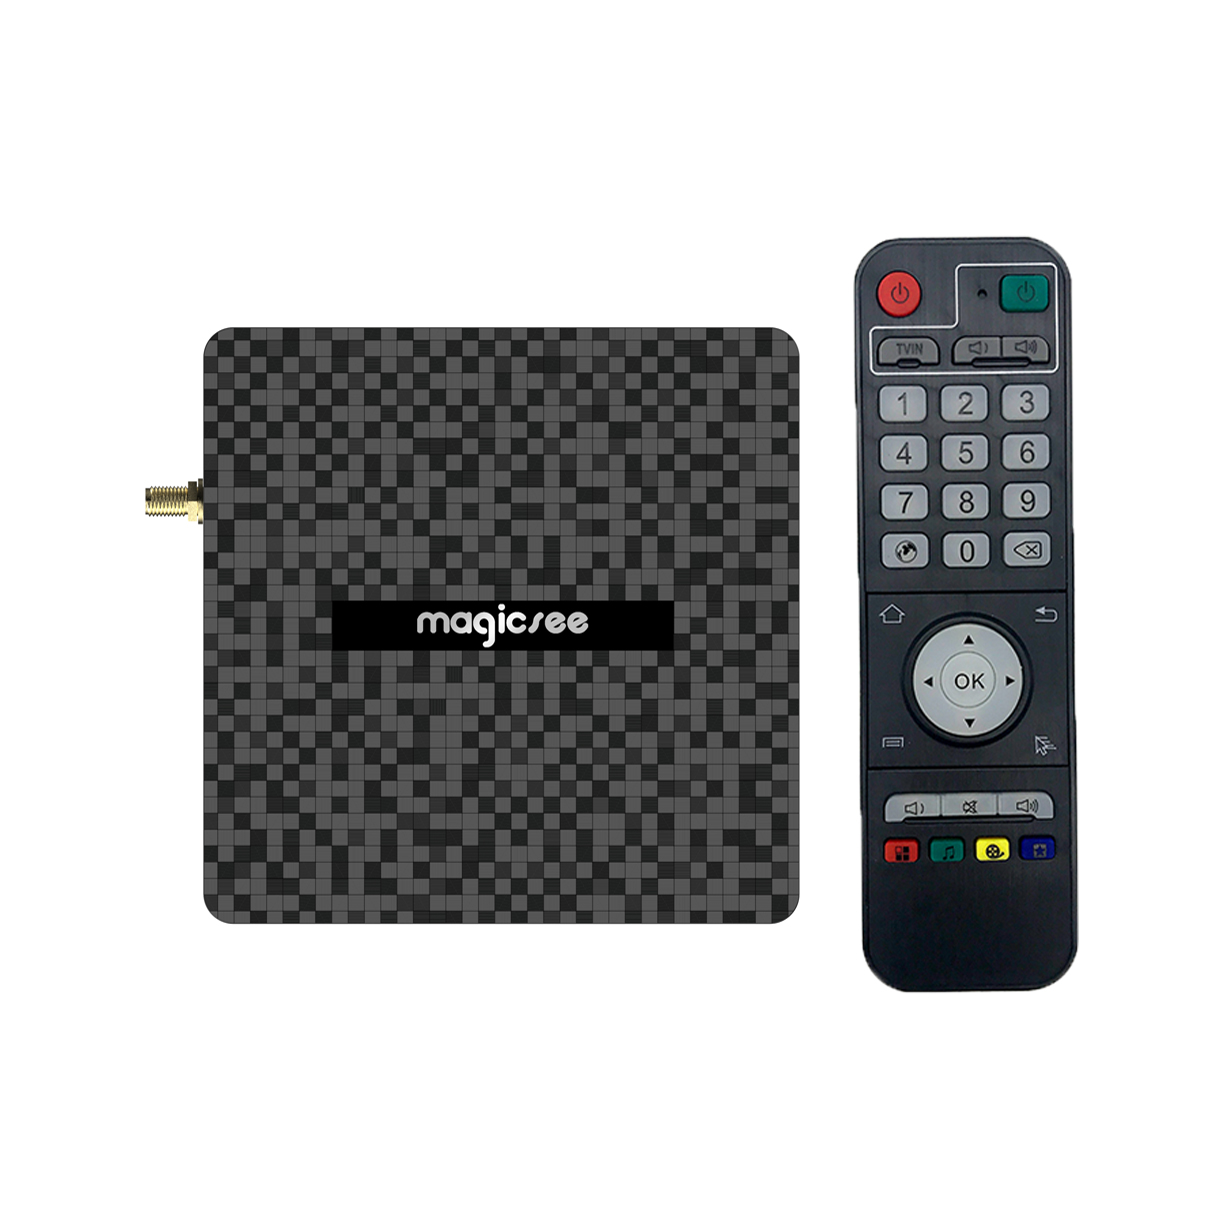 TV Box Smart Android 9.0 DDR4 4GB 32GB/64GB N6 Plus Amlogic S922X Dual Wifi Bluetooth Gigabit Ethernet Media Player Set Top Box black_4 + 64GB U.S. regulations